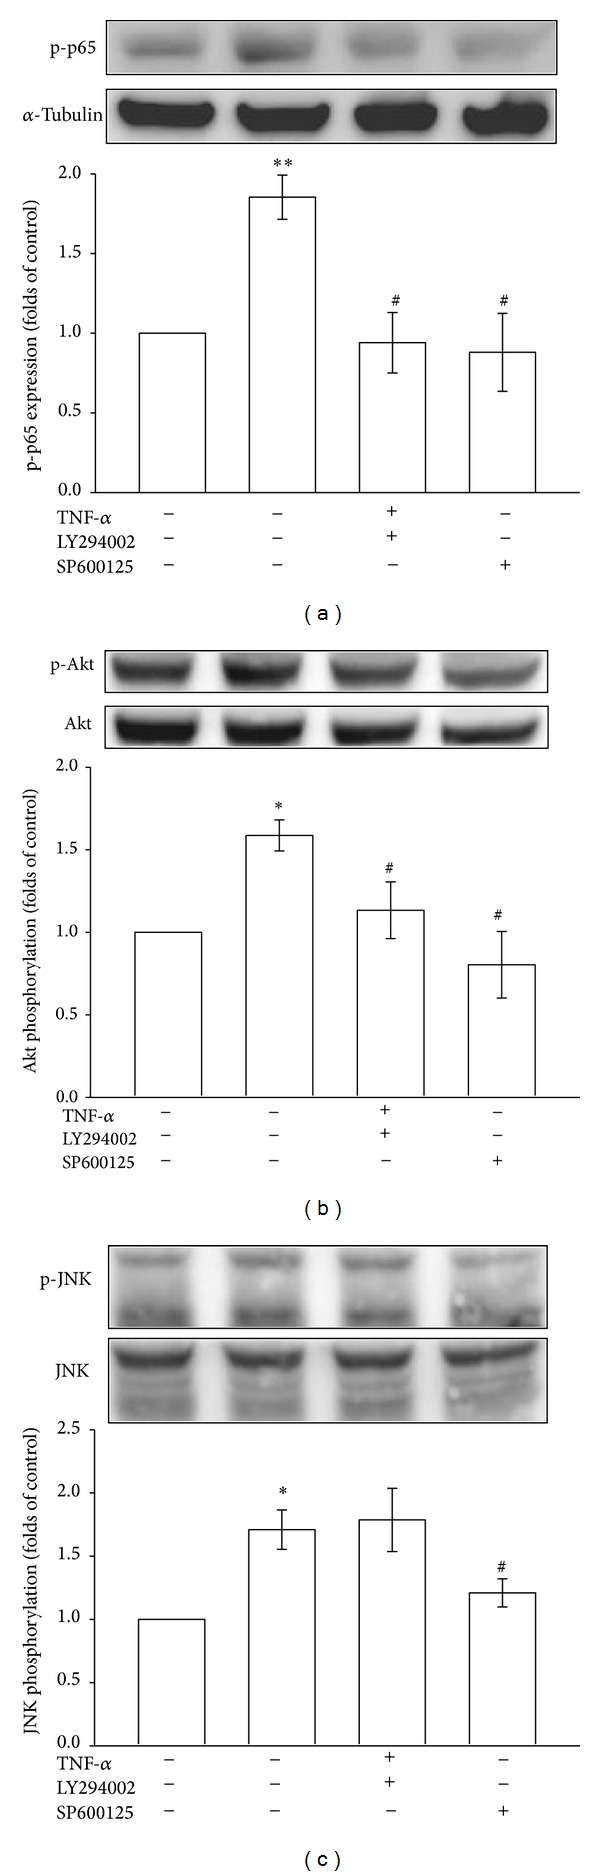 Regulatory effects of various signal inhibitors on p65 activation and Akt and JNK phosphorylation in TNF- α -stimulated VSMCs. The VSMCs were treated with PBS (resting group) or pretreated with LY294002 (10 μ M), SP600125 (10 μ M), or an equal volume of DMSO (solvent control) for 20 min, and TNF- α (10 ng/mL) was subsequently added for 10 min ((b) and (c)) or 30 min (a). (a) p65 phosphorylation, (b) Akt phosphorylation, and (c) JNK phosphorylation were evaluated as described in Section 2 .* P